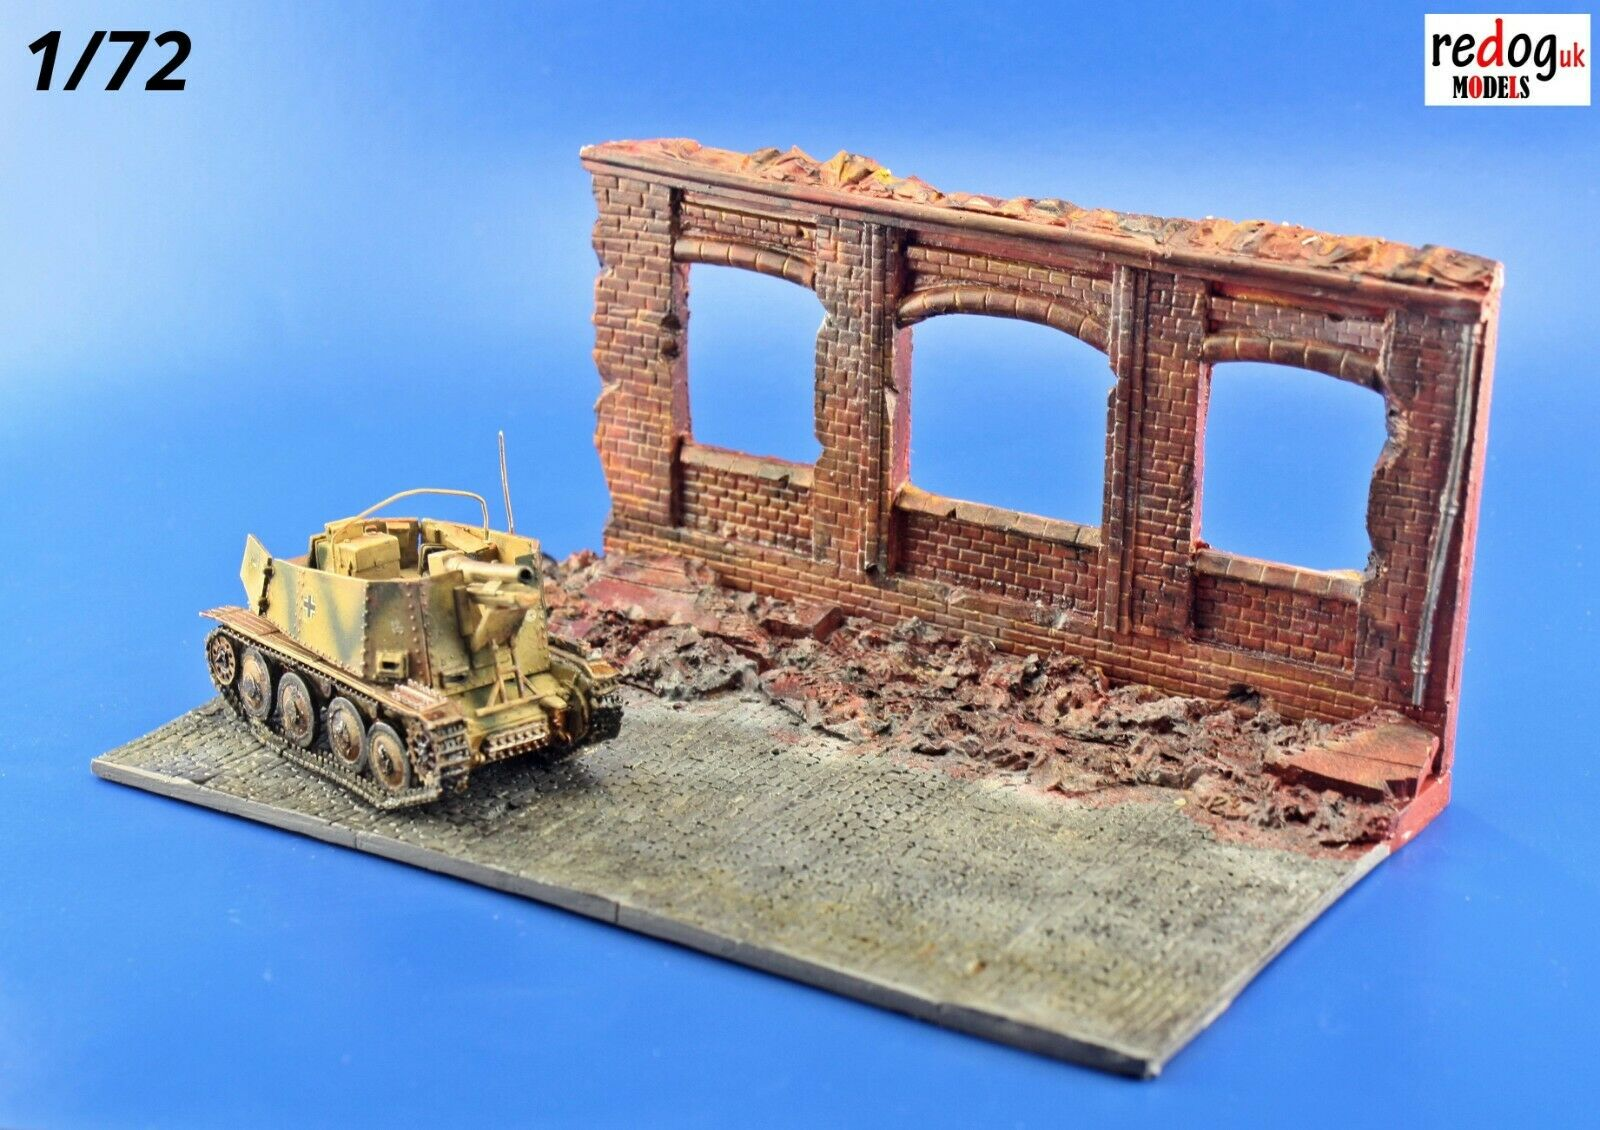 Redog 1/72 Ruined Factory Military Scale Model Display Base Diorama R6